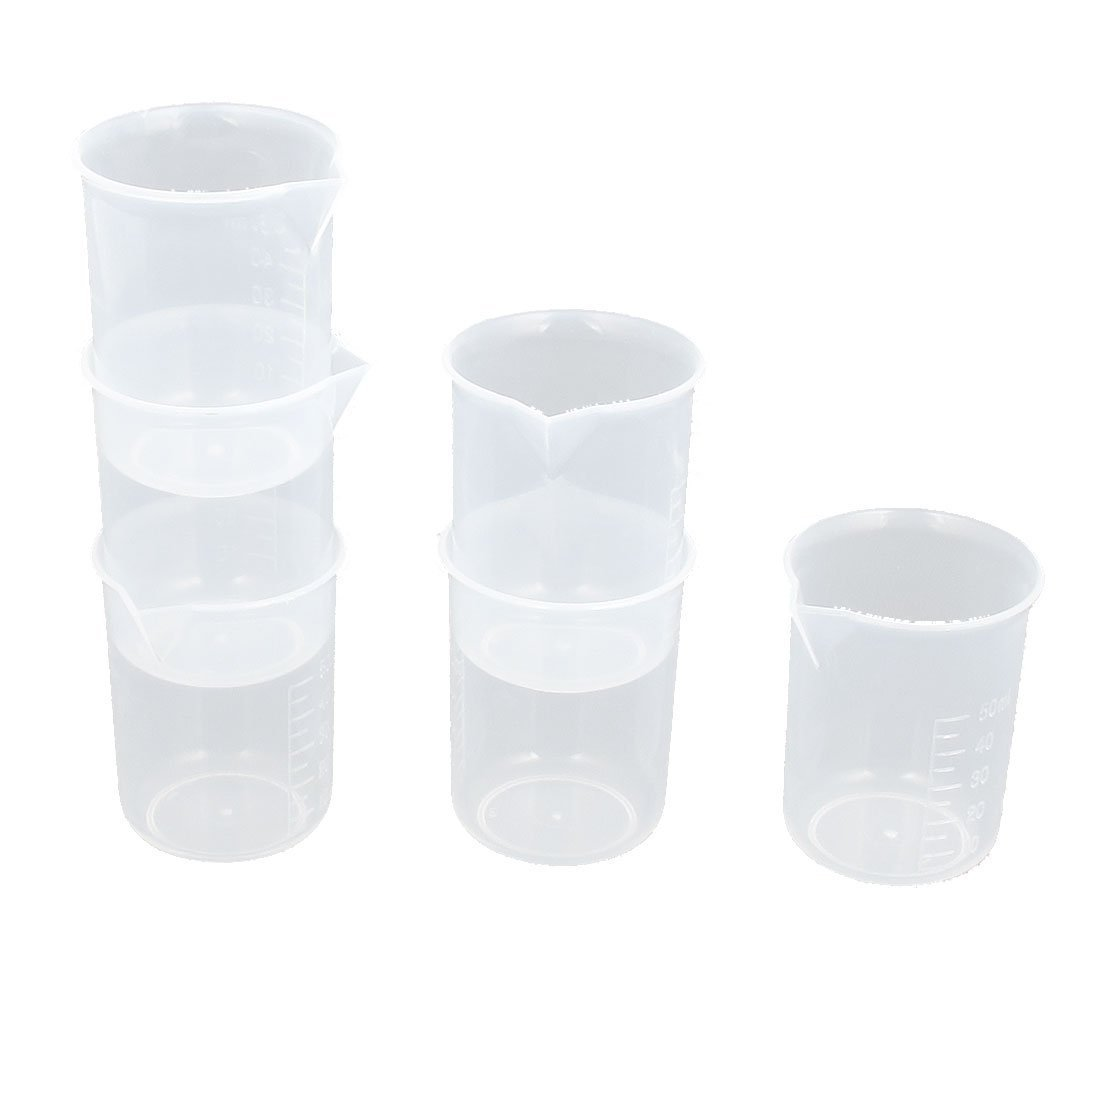 sourcingmap® Plastic Lab Graduated Liquid Measuring Beaker Testing Cup 50mL 6pcs a15101600ux0168